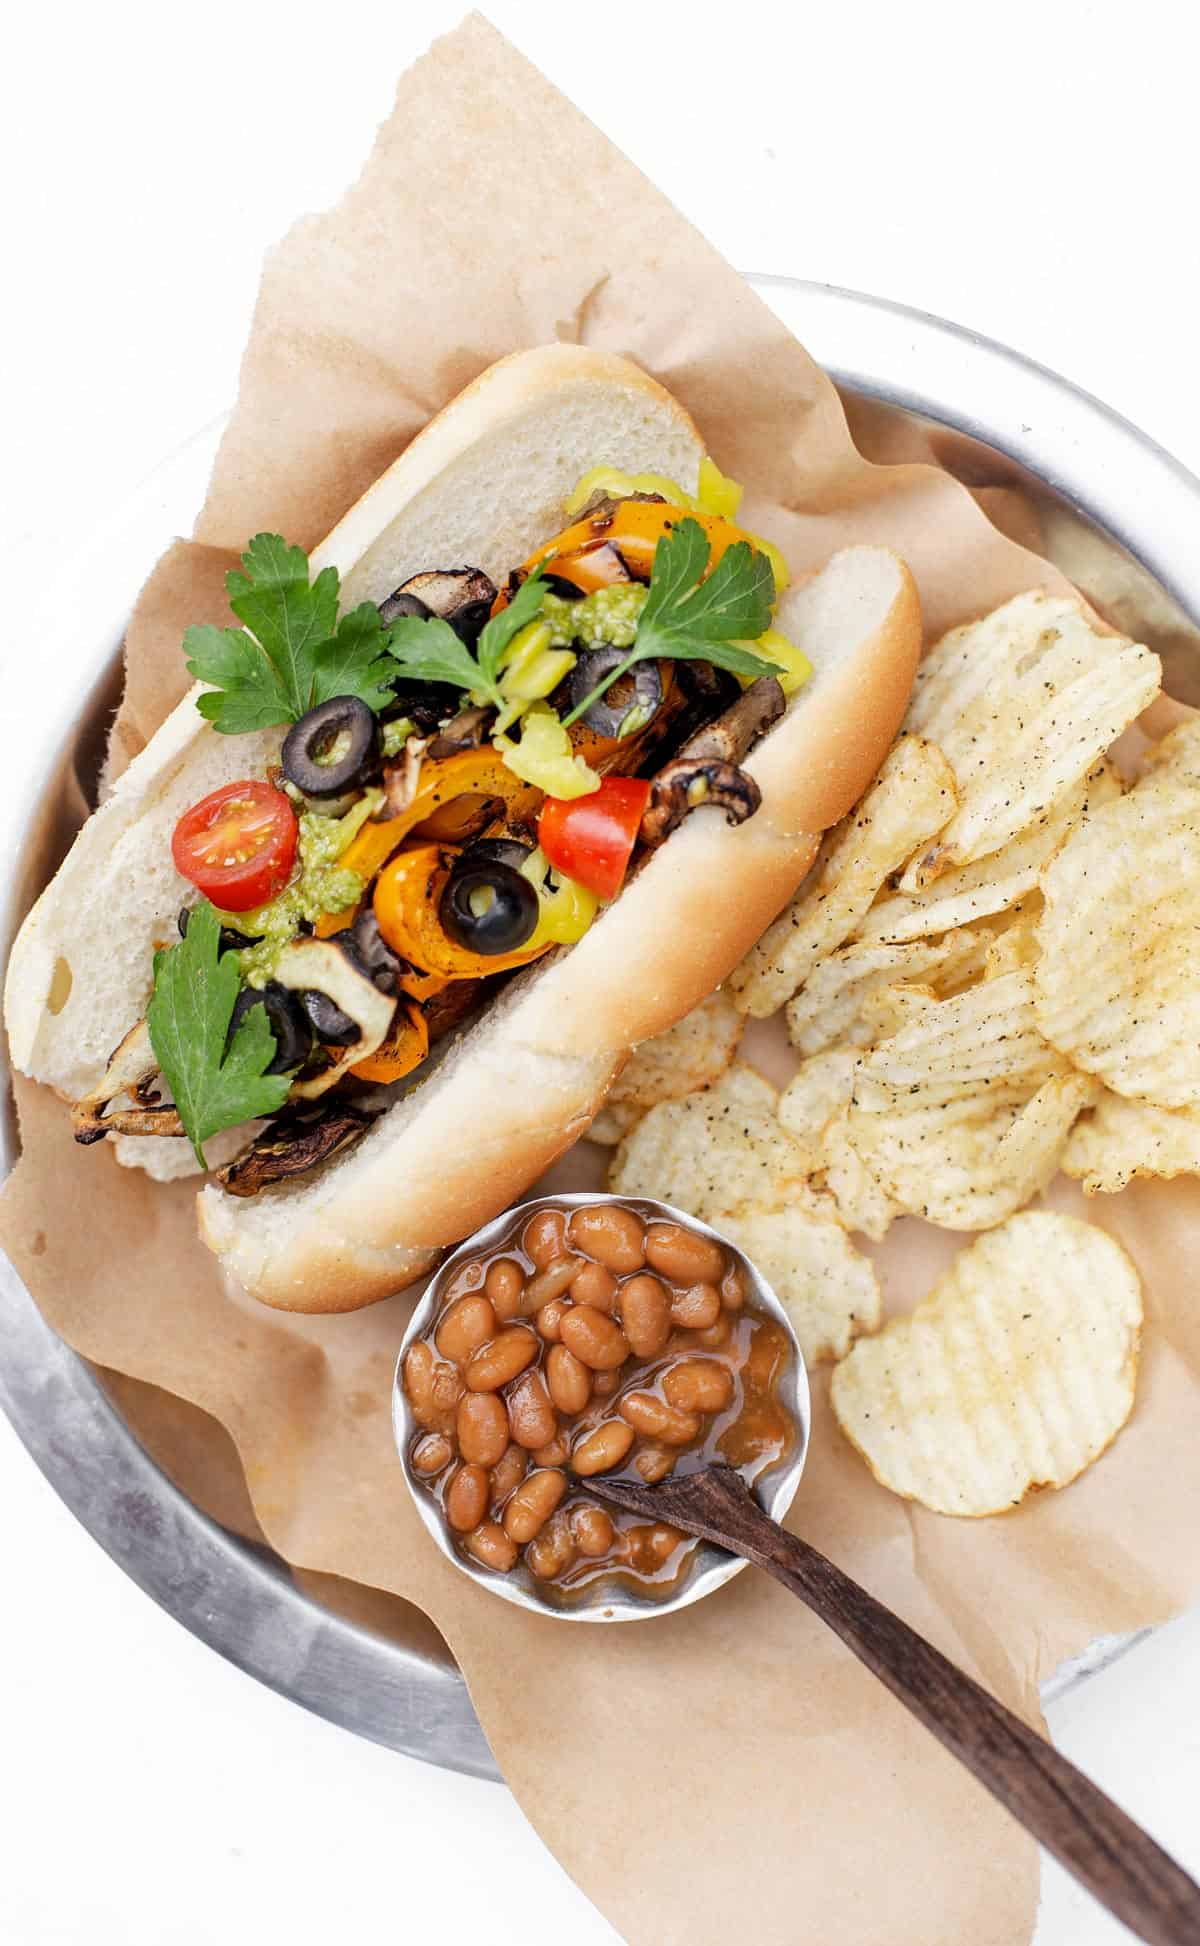 A gourmet hot dog recipe with grilled peppers, onions, parsley, pesto and more